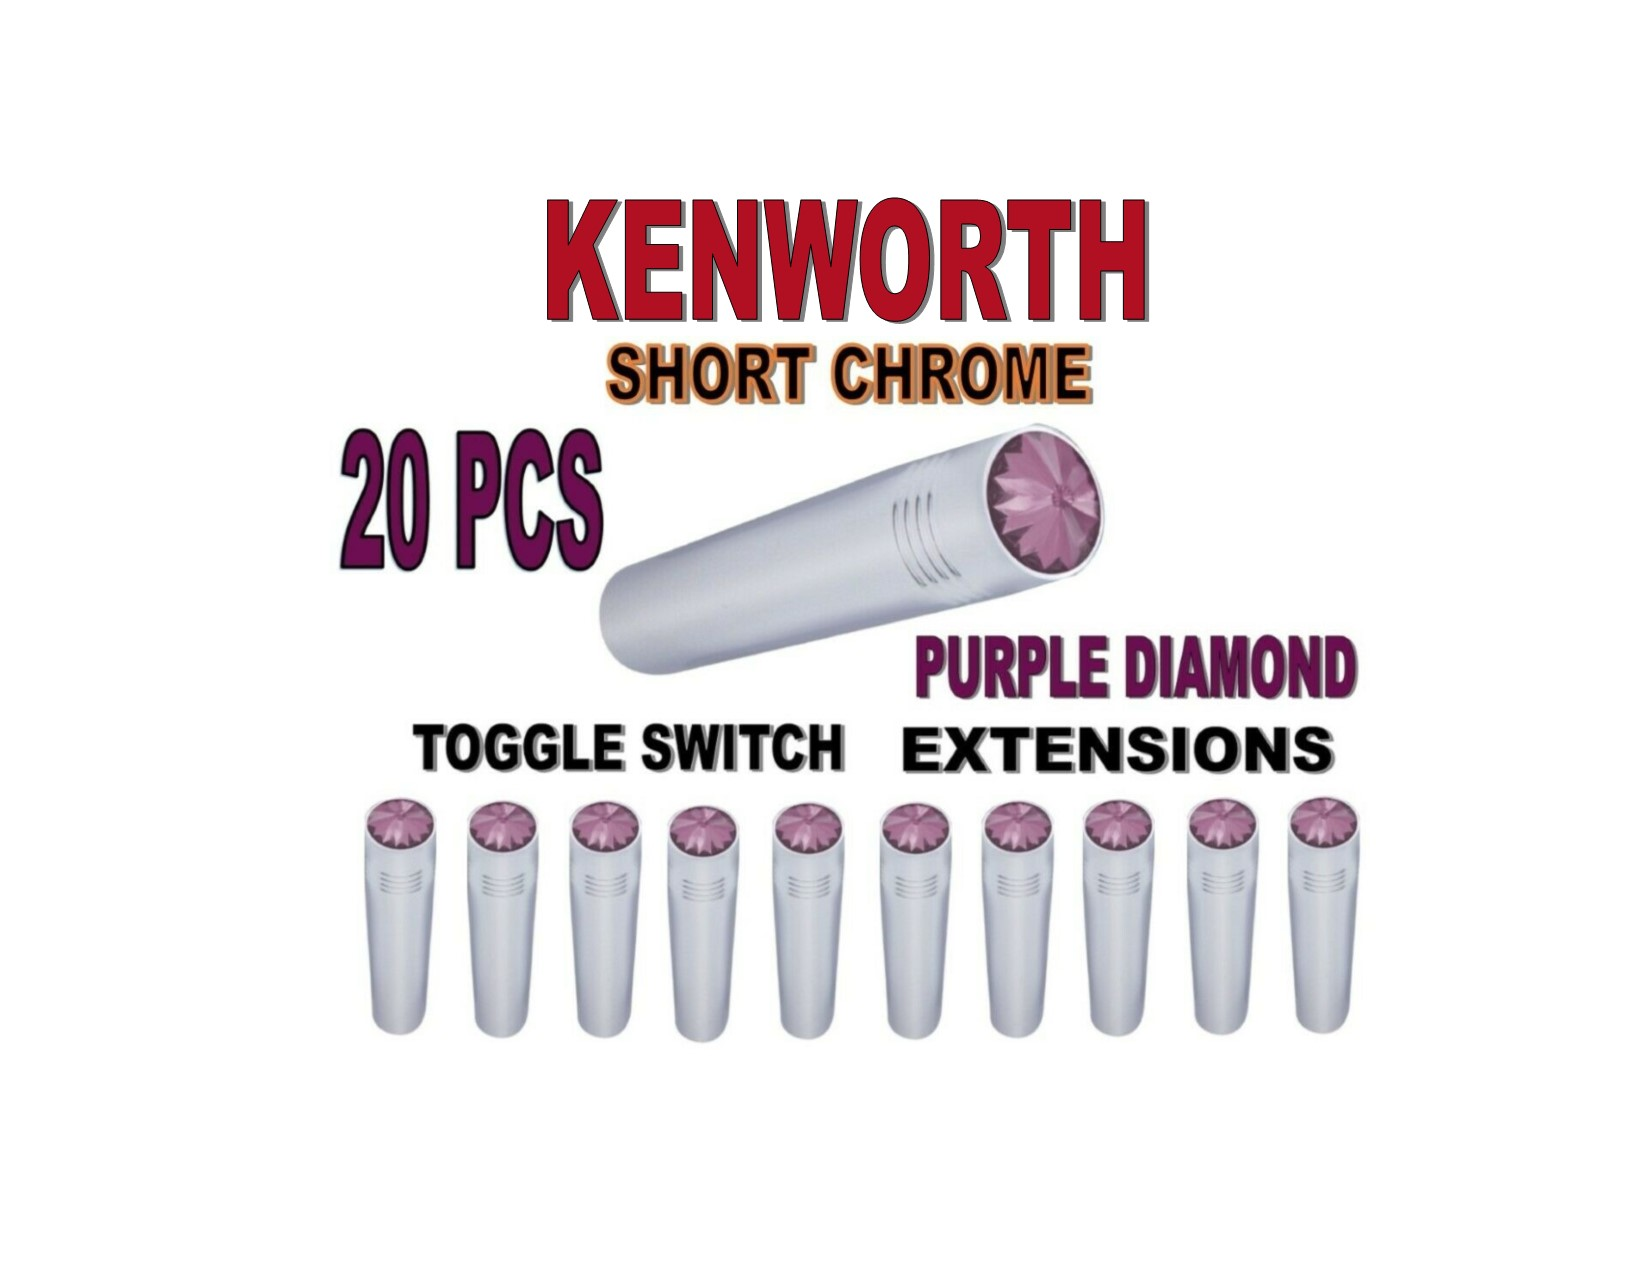 Toggle Switch Ext. Short Chrome - PURPLE Diamond (X20) KENWORTH